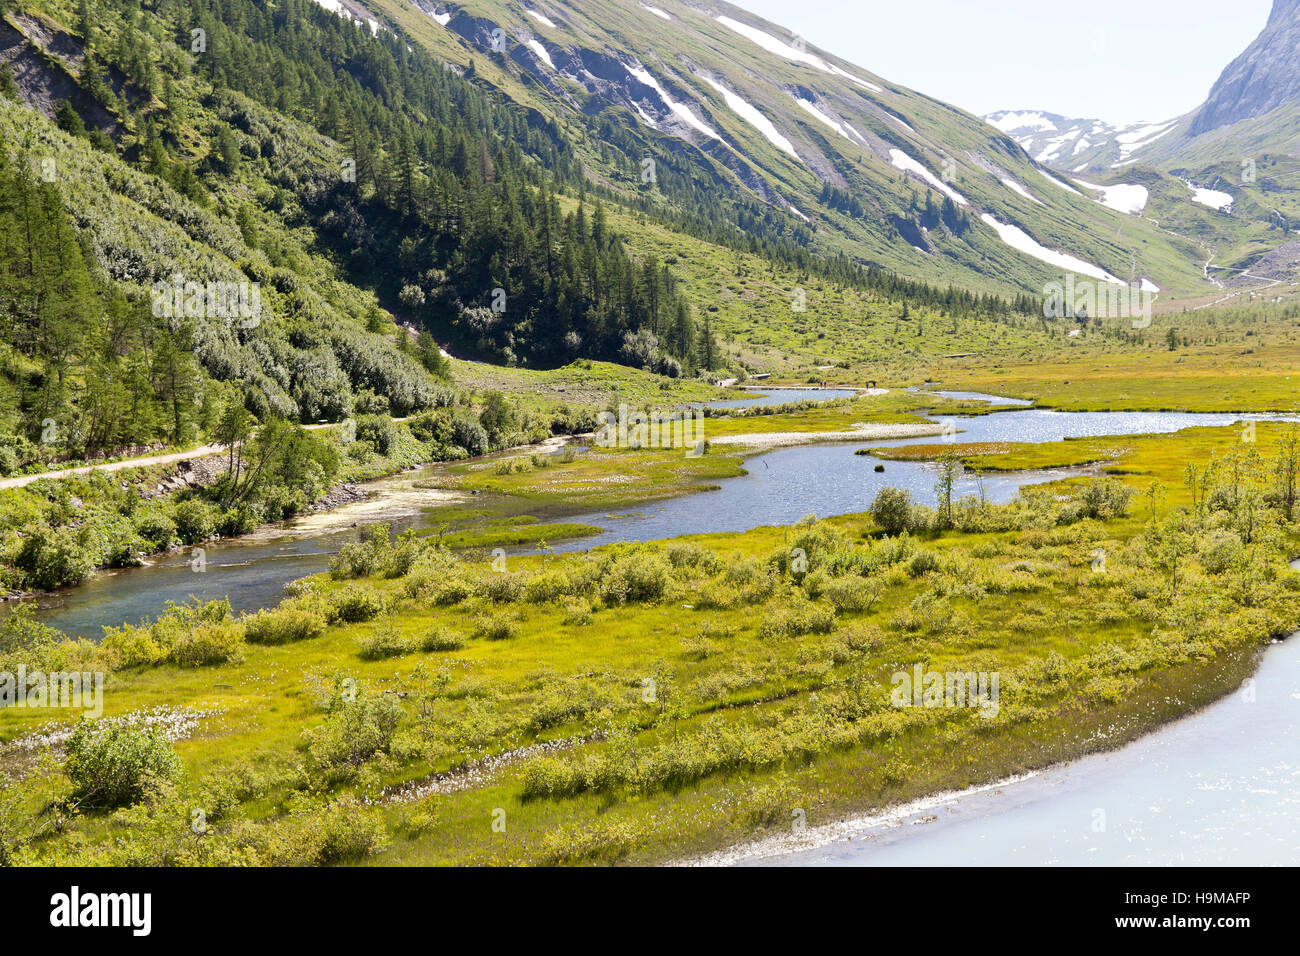 Val Veny Valle d'Aosta Italy creek water green meadows trees snow summer travel - Stock Image